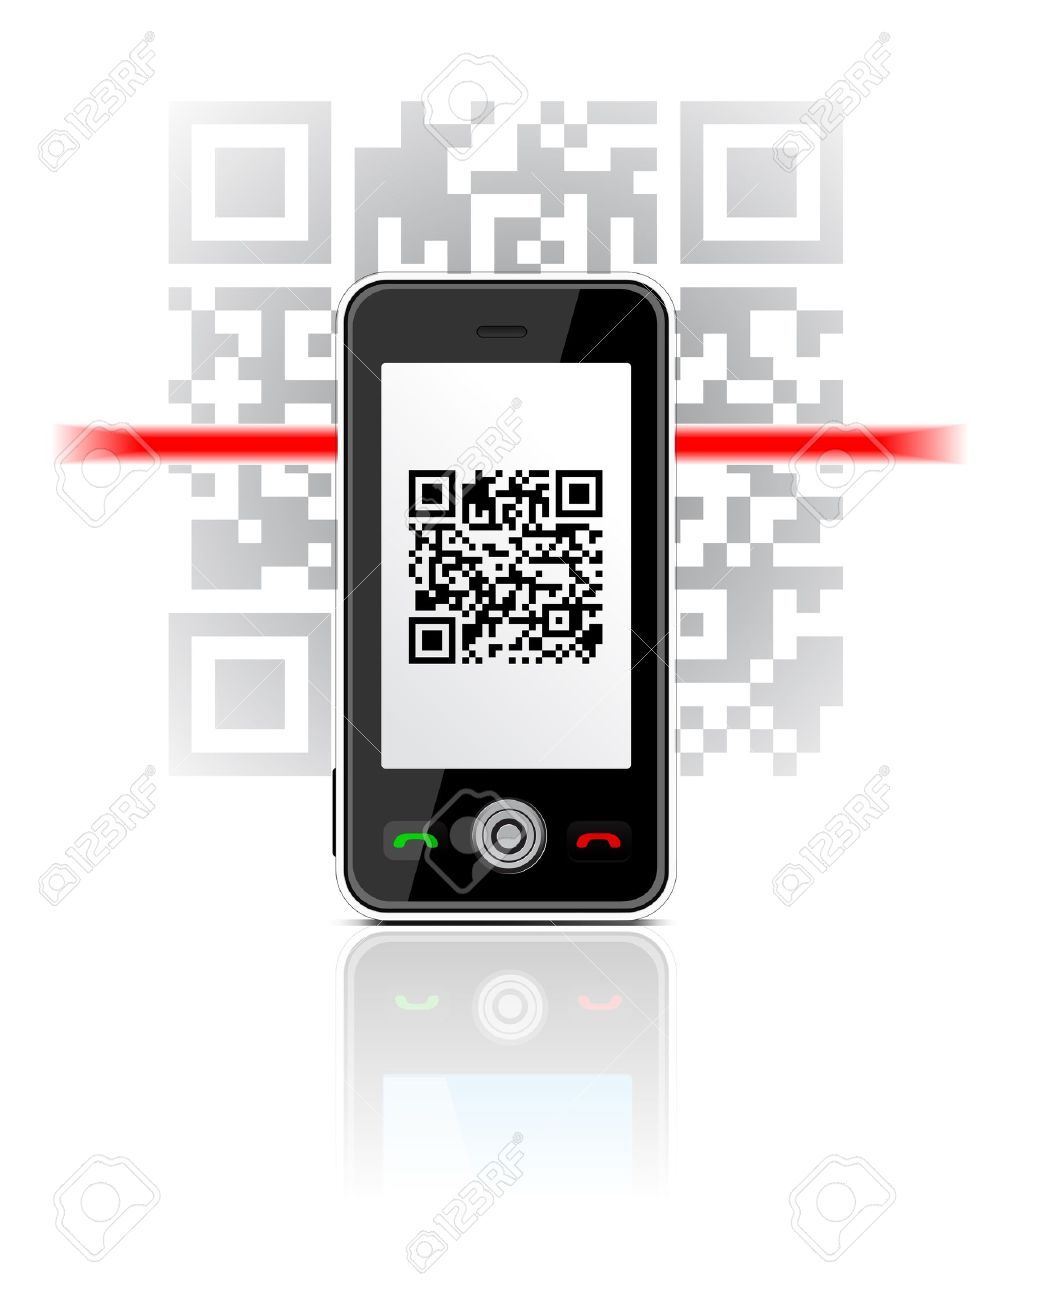 Phone Scaned QR Code Royalty Free Cliparts, Vectors, And Stock.